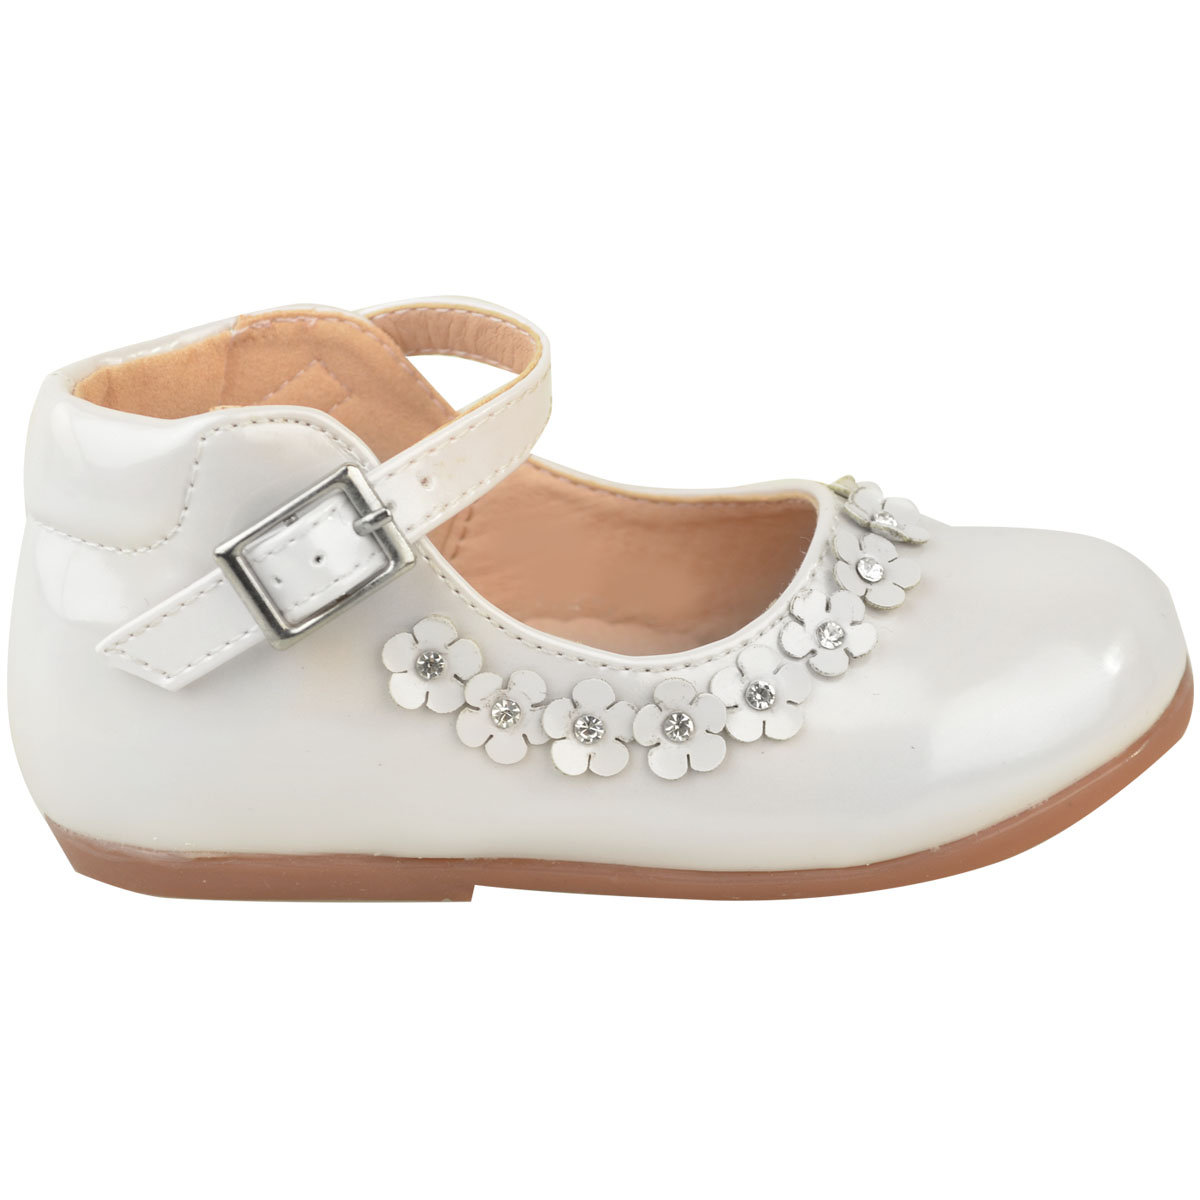 Girls Kids Childrens Low Heel Party Wedding Mary Jane